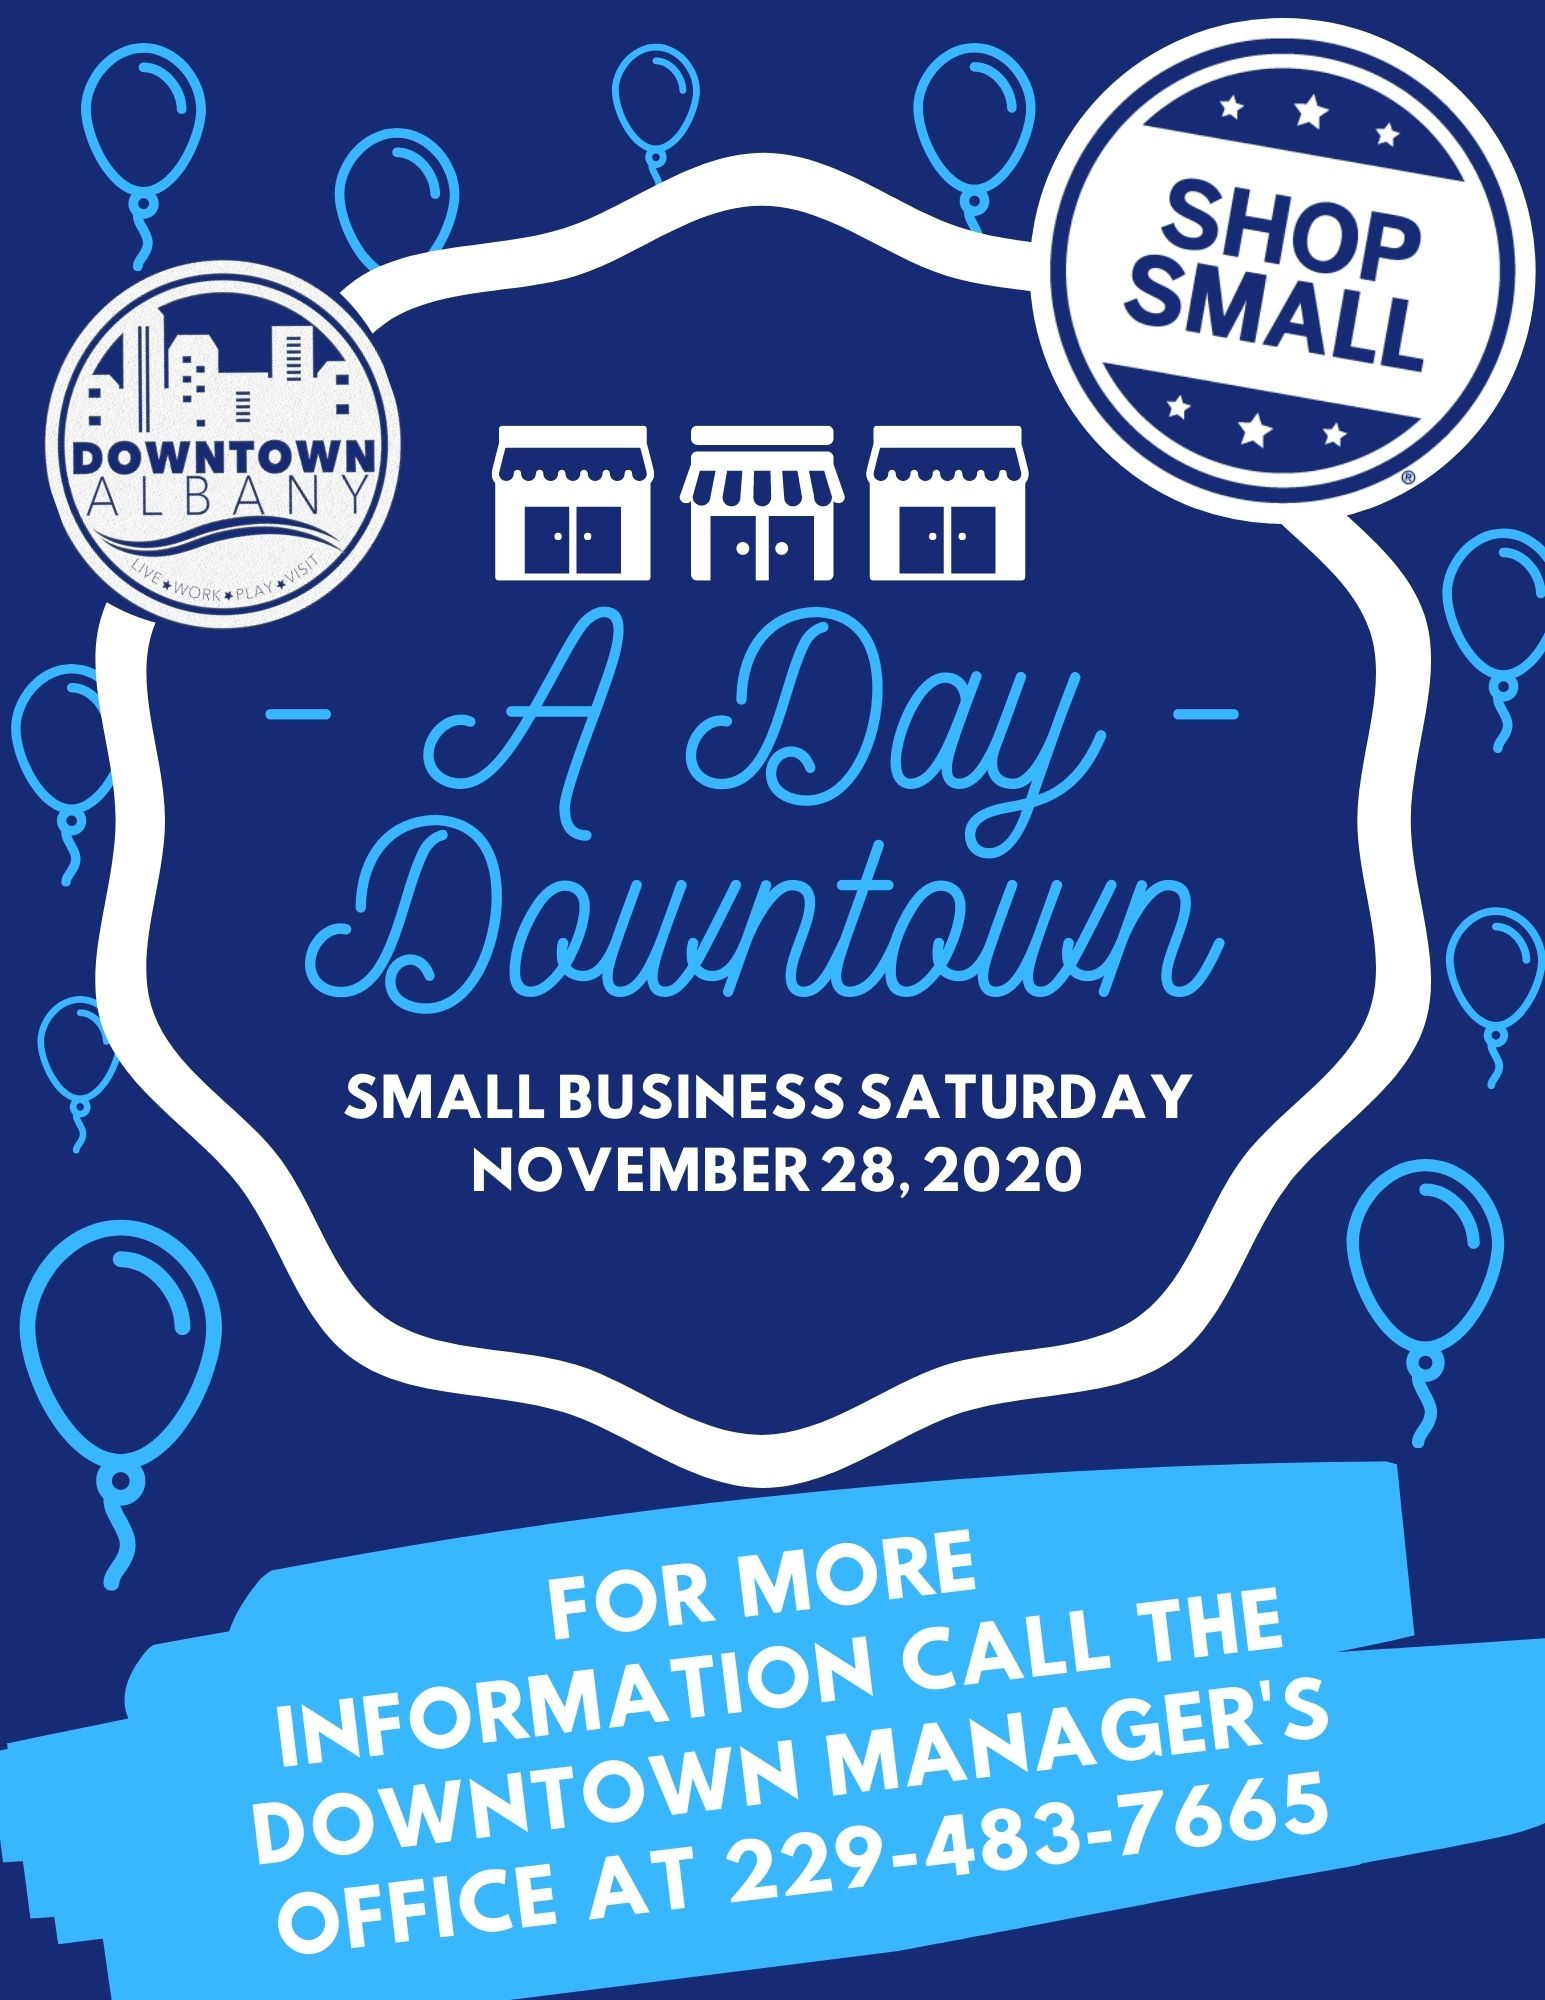 Small Business Saturday: A Day Downtown